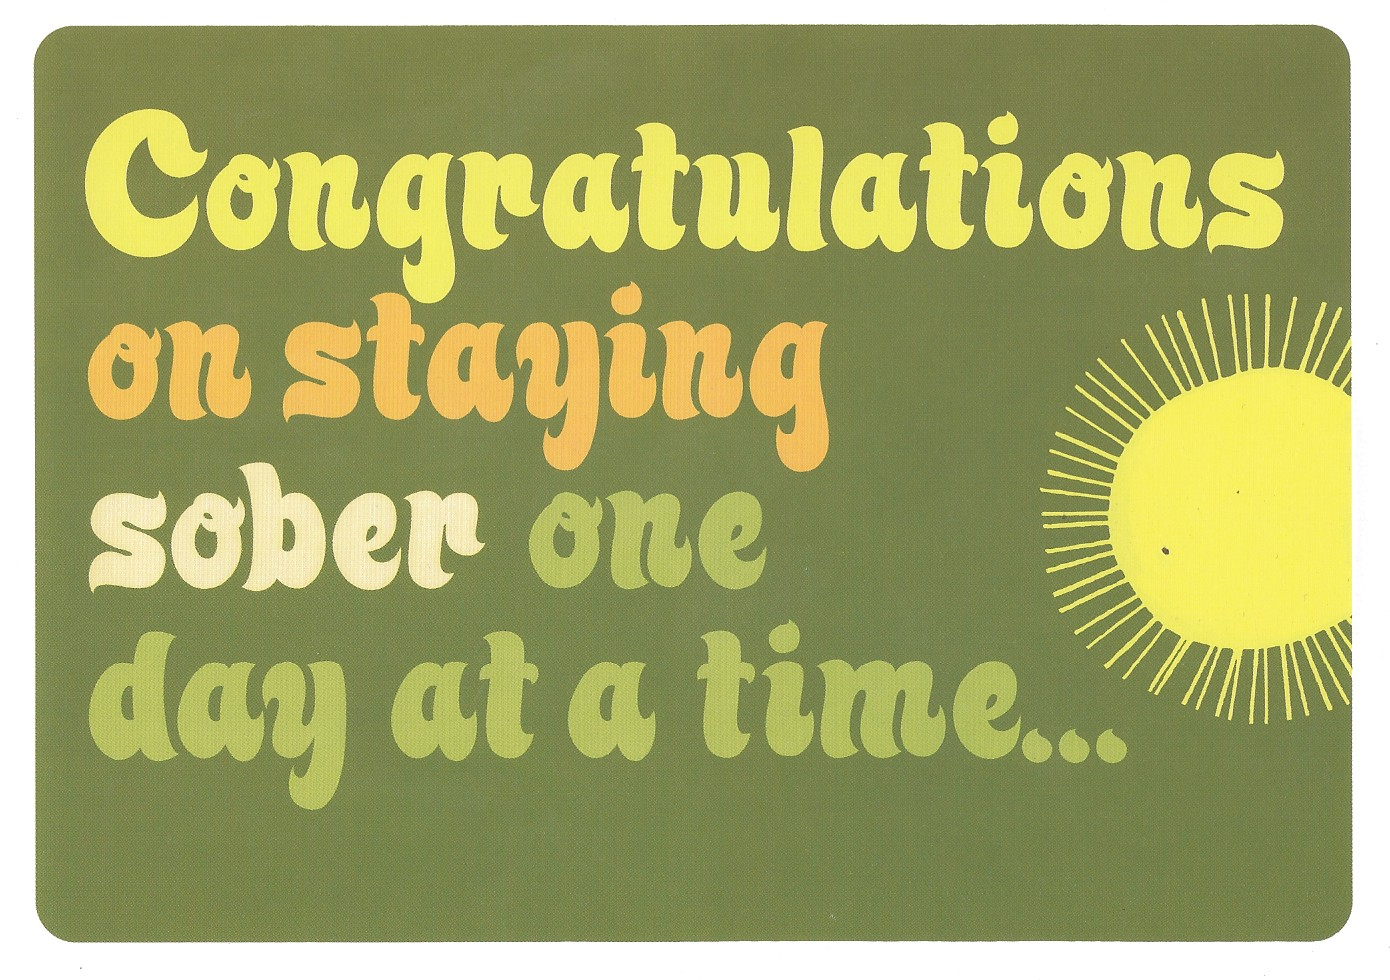 Sobriety card sobriety anniversary cards my 12 step store congratulations on staying sober greeting card cogratsodatcardg bookmarktalkfo Choice Image